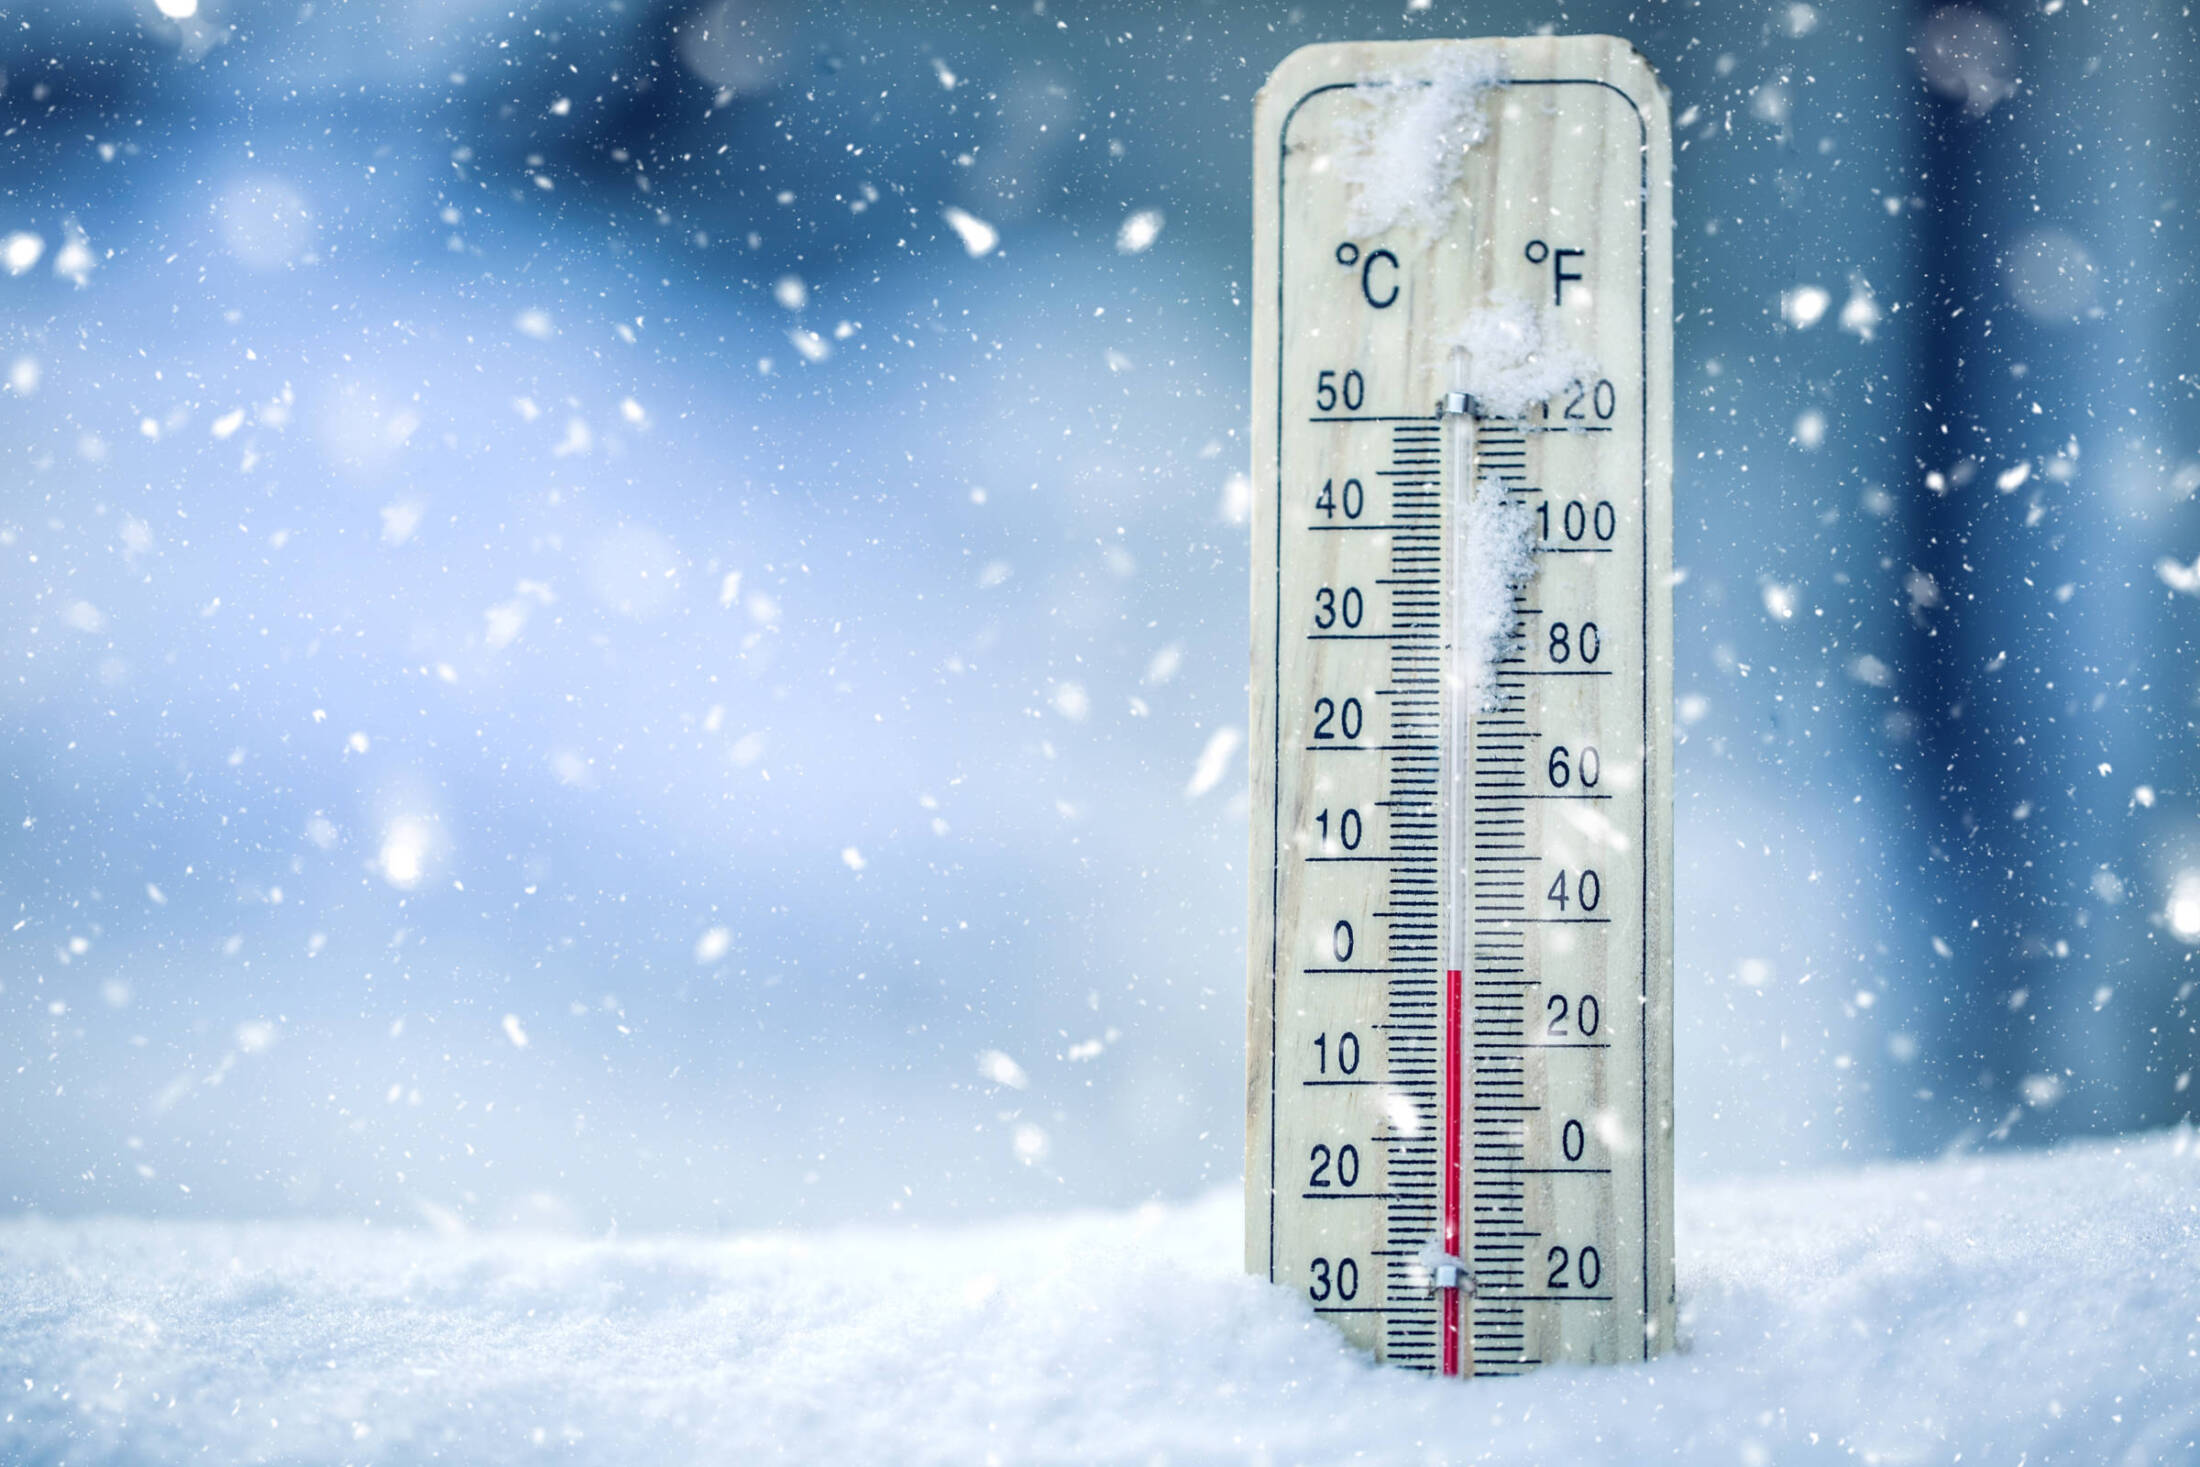 Thermometer On Snow Shows Low Temperatures – Zero. Low Temperatures In Degrees Celsius And Fahrenheit. Cold Winter Weather – Zero Celsius Thirty Two Farenheit